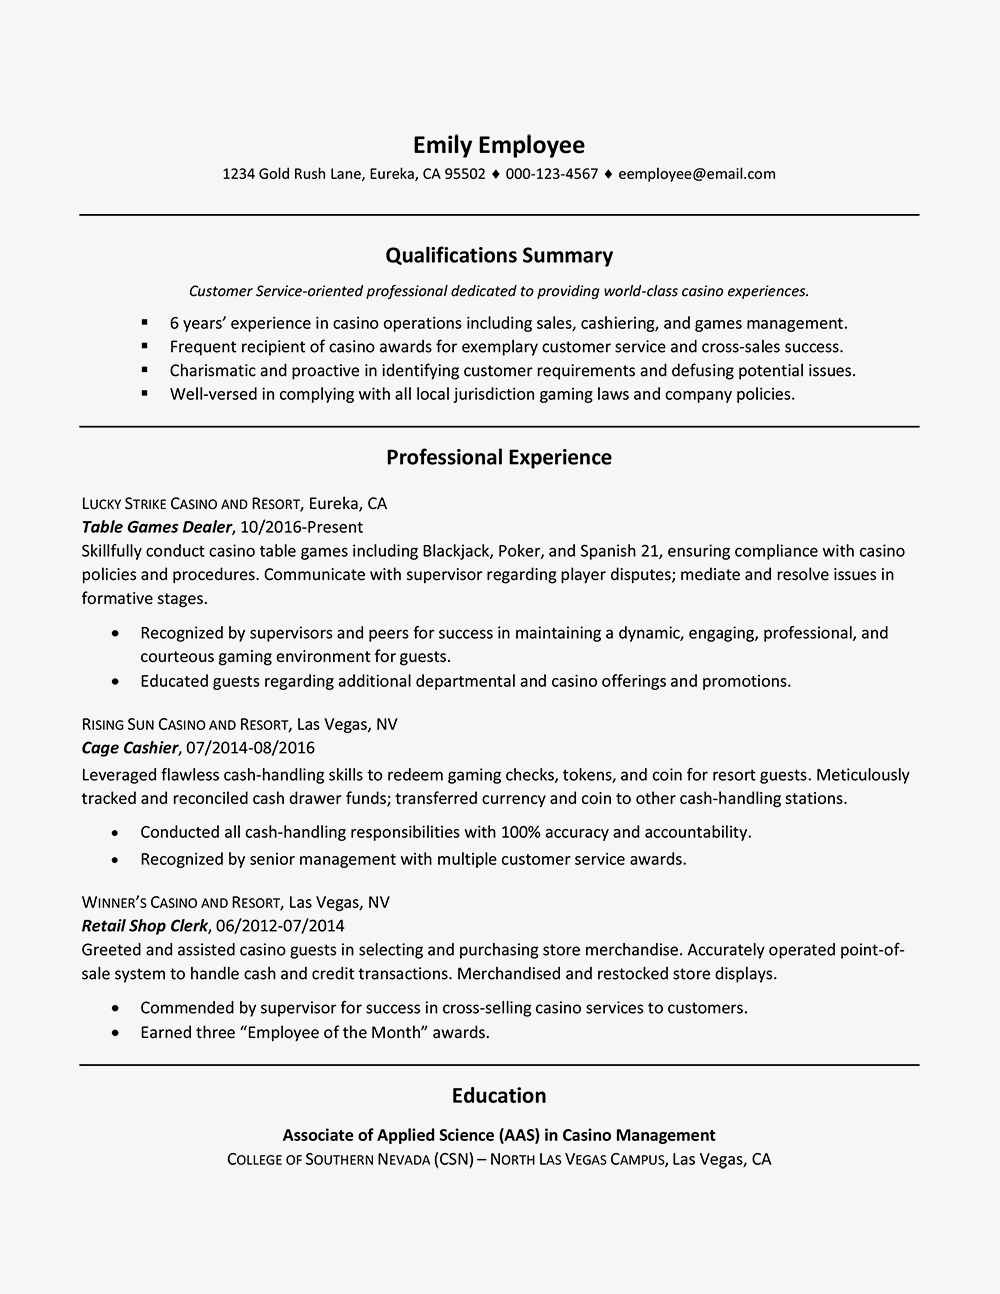 Resume Education Transfer Student - What Not to Include when You Re Writing A Resume